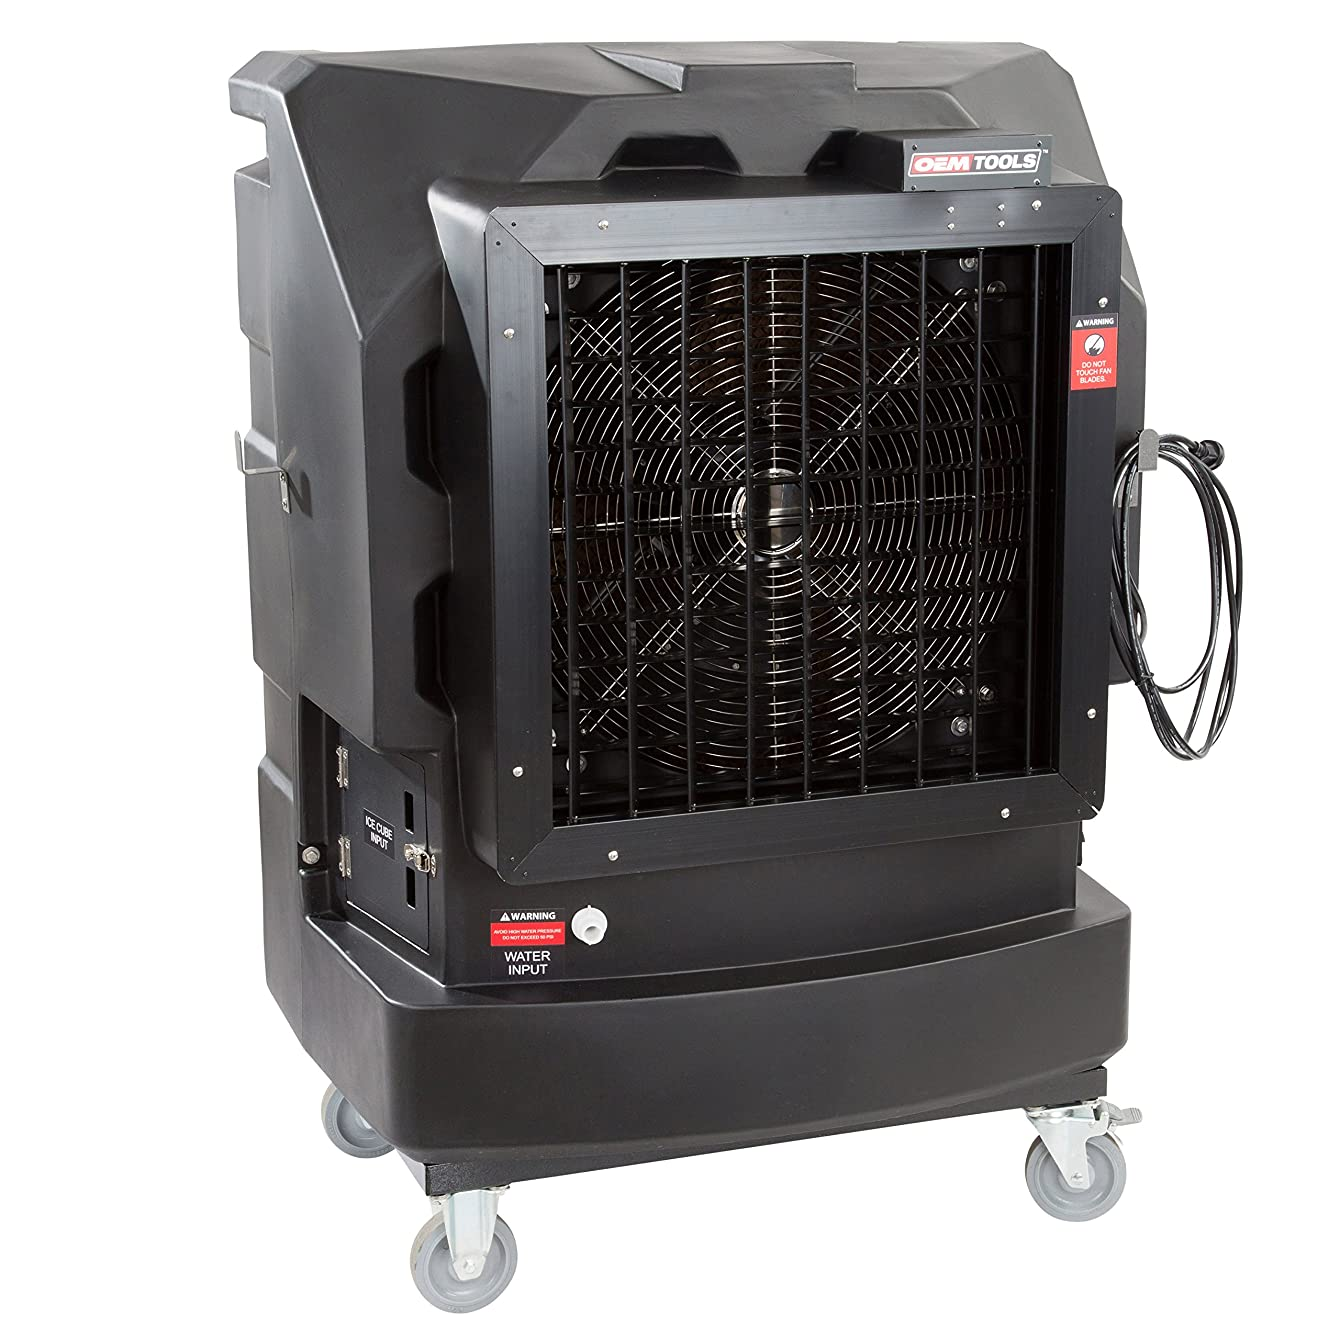 OEMTOOLS 23970 10,600 CFM Variable Speed Evaporative Cooler